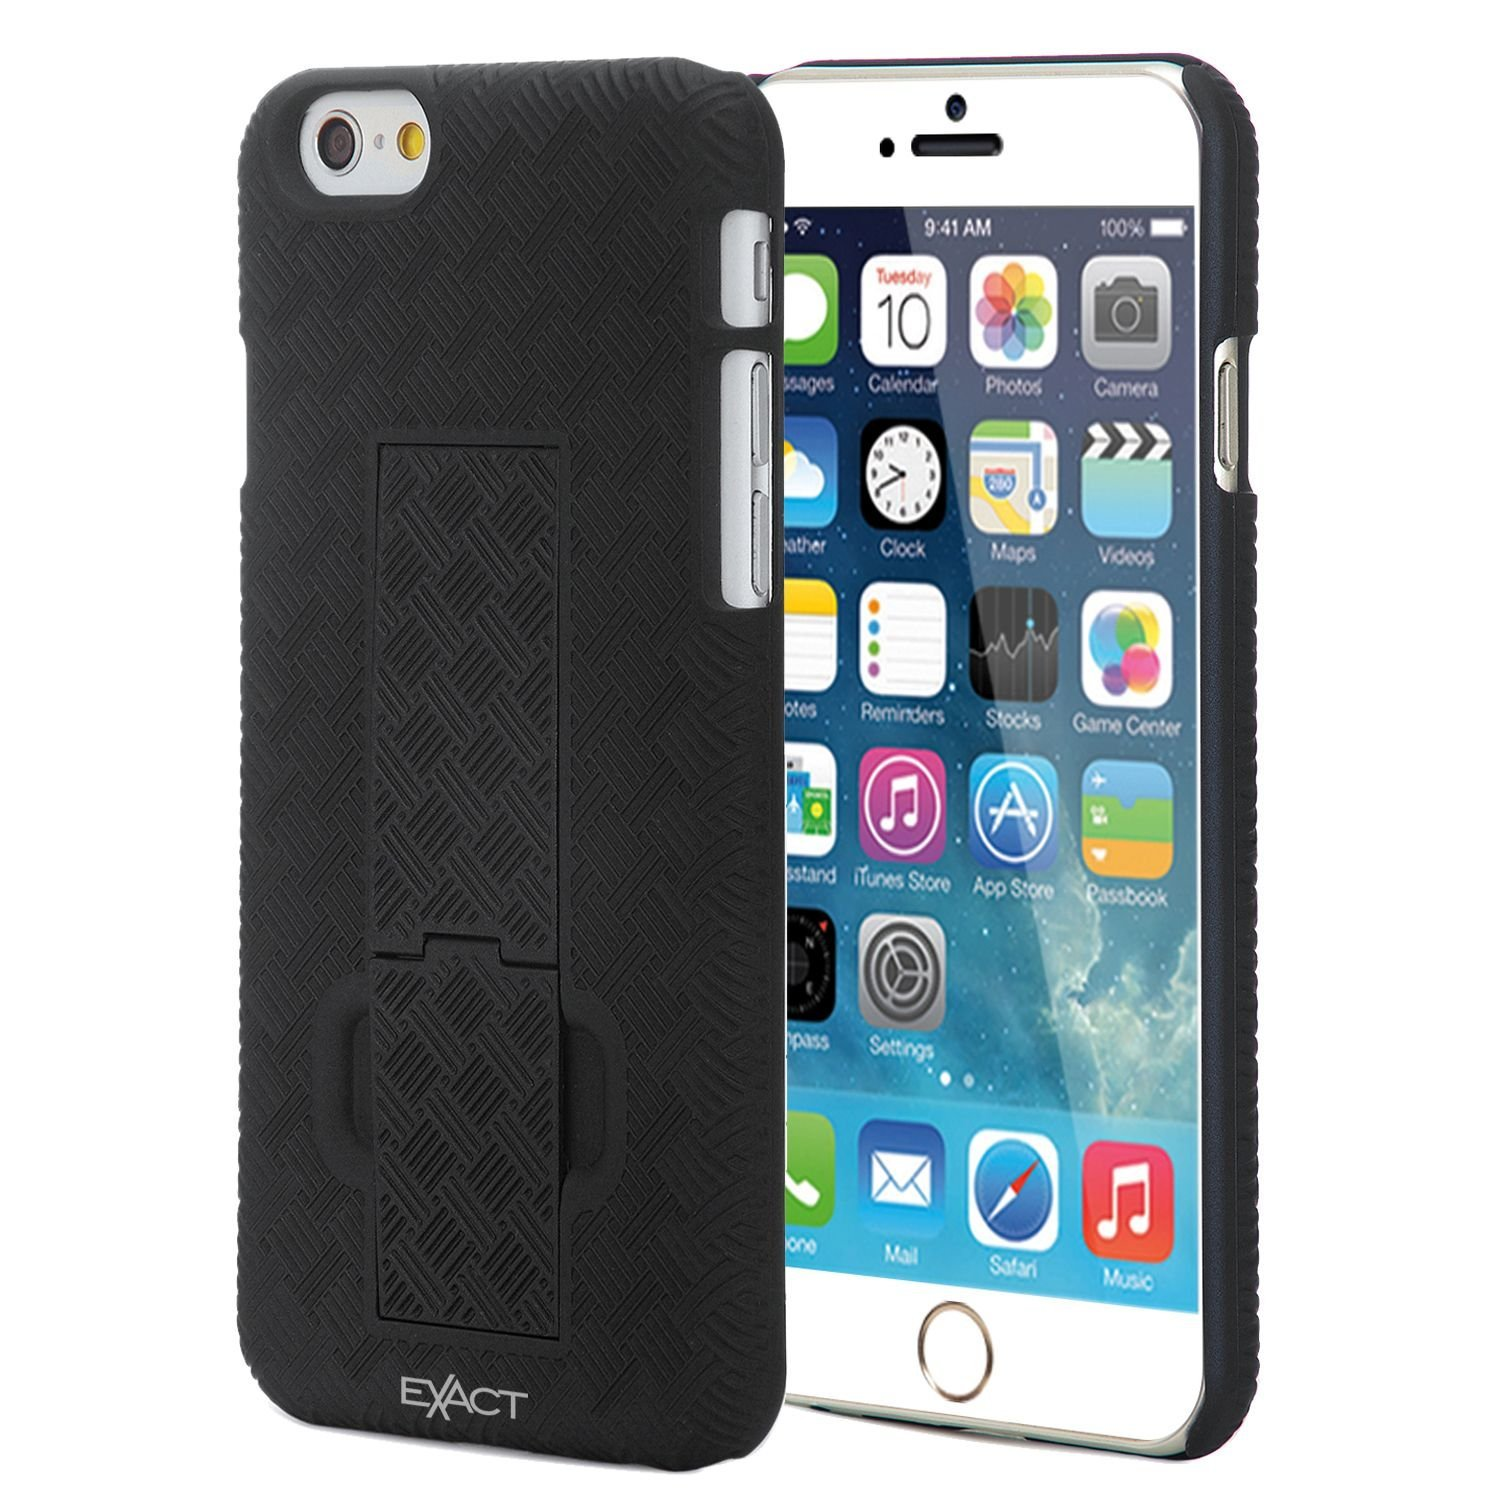 iPhone 6 Plus Case - Exact Apple iPhone 6 Plus 5.5 Case [KickDRAW Series] - Slim Kickstand Shell Case With Swivel Holster for Apple iPhone 6 Plus (5.5-inch) Black